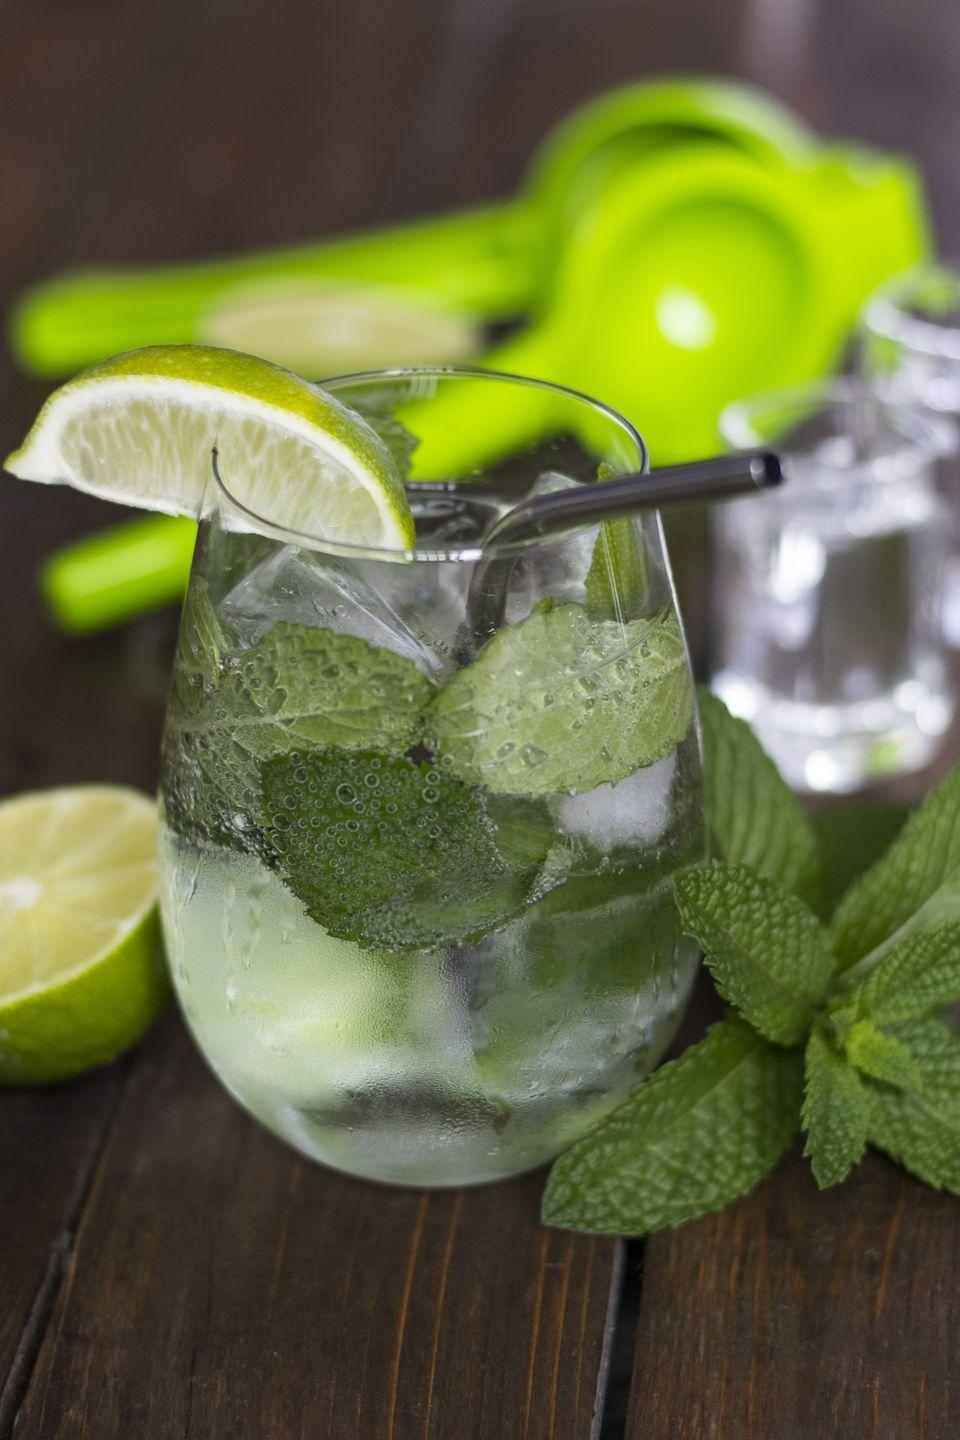 """<p>On a warm spring day, mojitos can be incredibly refreshing — but they're also often loaded with sugar and calories. Luckily, this keto mojito recipe from <a href=""""https://www.tasteaholics.com/recipes/drinks/keto-mojito-low-carb-sugar-free/"""" rel=""""nofollow noopener"""" target=""""_blank"""" data-ylk=""""slk:Tasteaholics"""" class=""""link rapid-noclick-resp"""">Tasteaholics</a> swaps out sugar with a tablespoon of the low-calorie sweetener<a class=""""link rapid-noclick-resp"""" href=""""https://amzn.to/2E2RKLL"""" rel=""""nofollow noopener"""" target=""""_blank"""" data-ylk=""""slk:erythritol""""> erythritol</a>. This cocktail has only 140 calories and contains only 3 grams of carbs.</p>"""